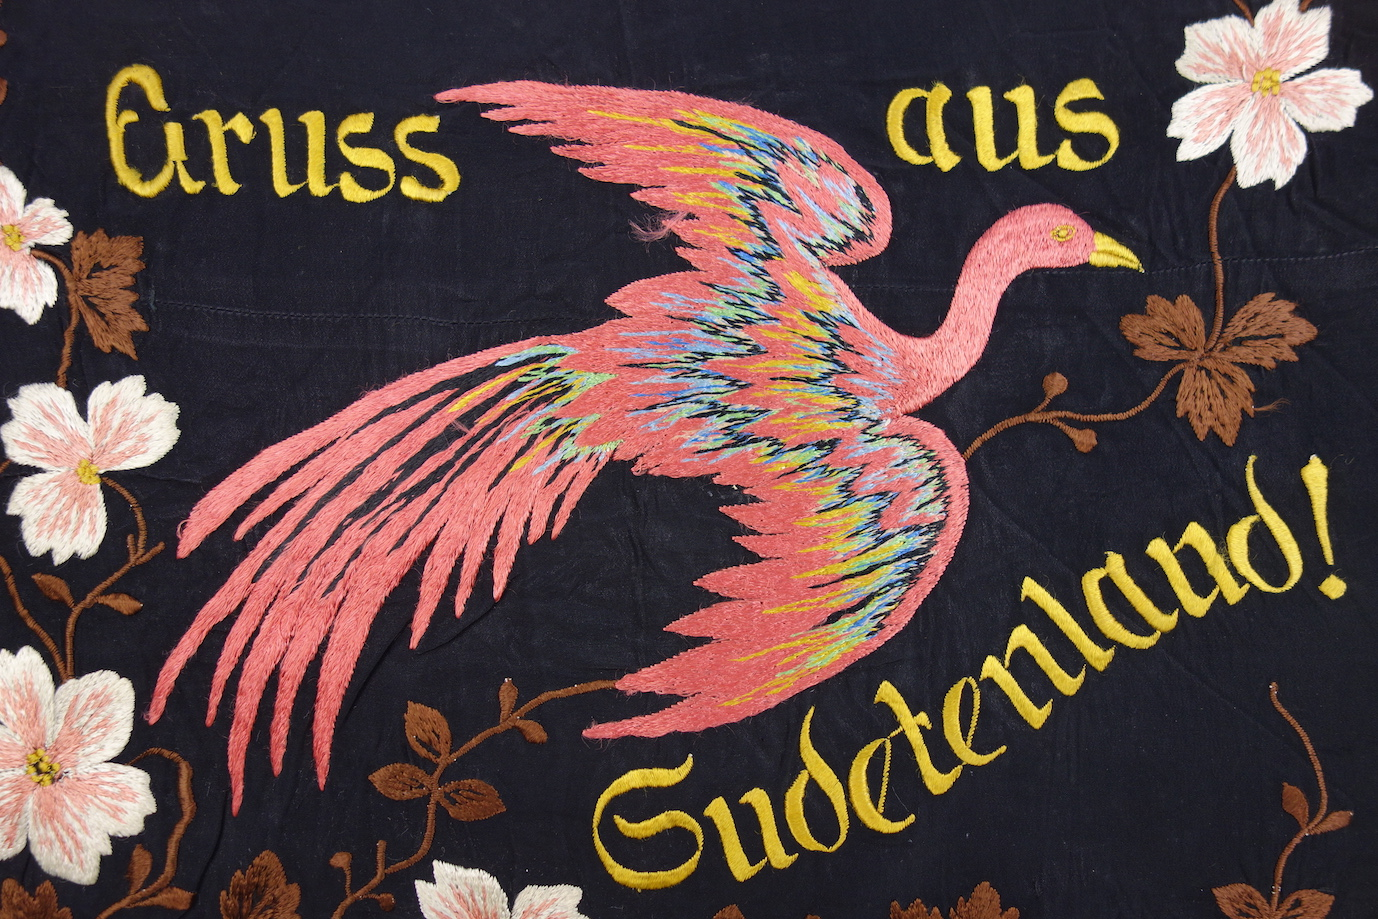 Machine embroidered memento of the German annexation of Gudetenland. TRC 2017.0423